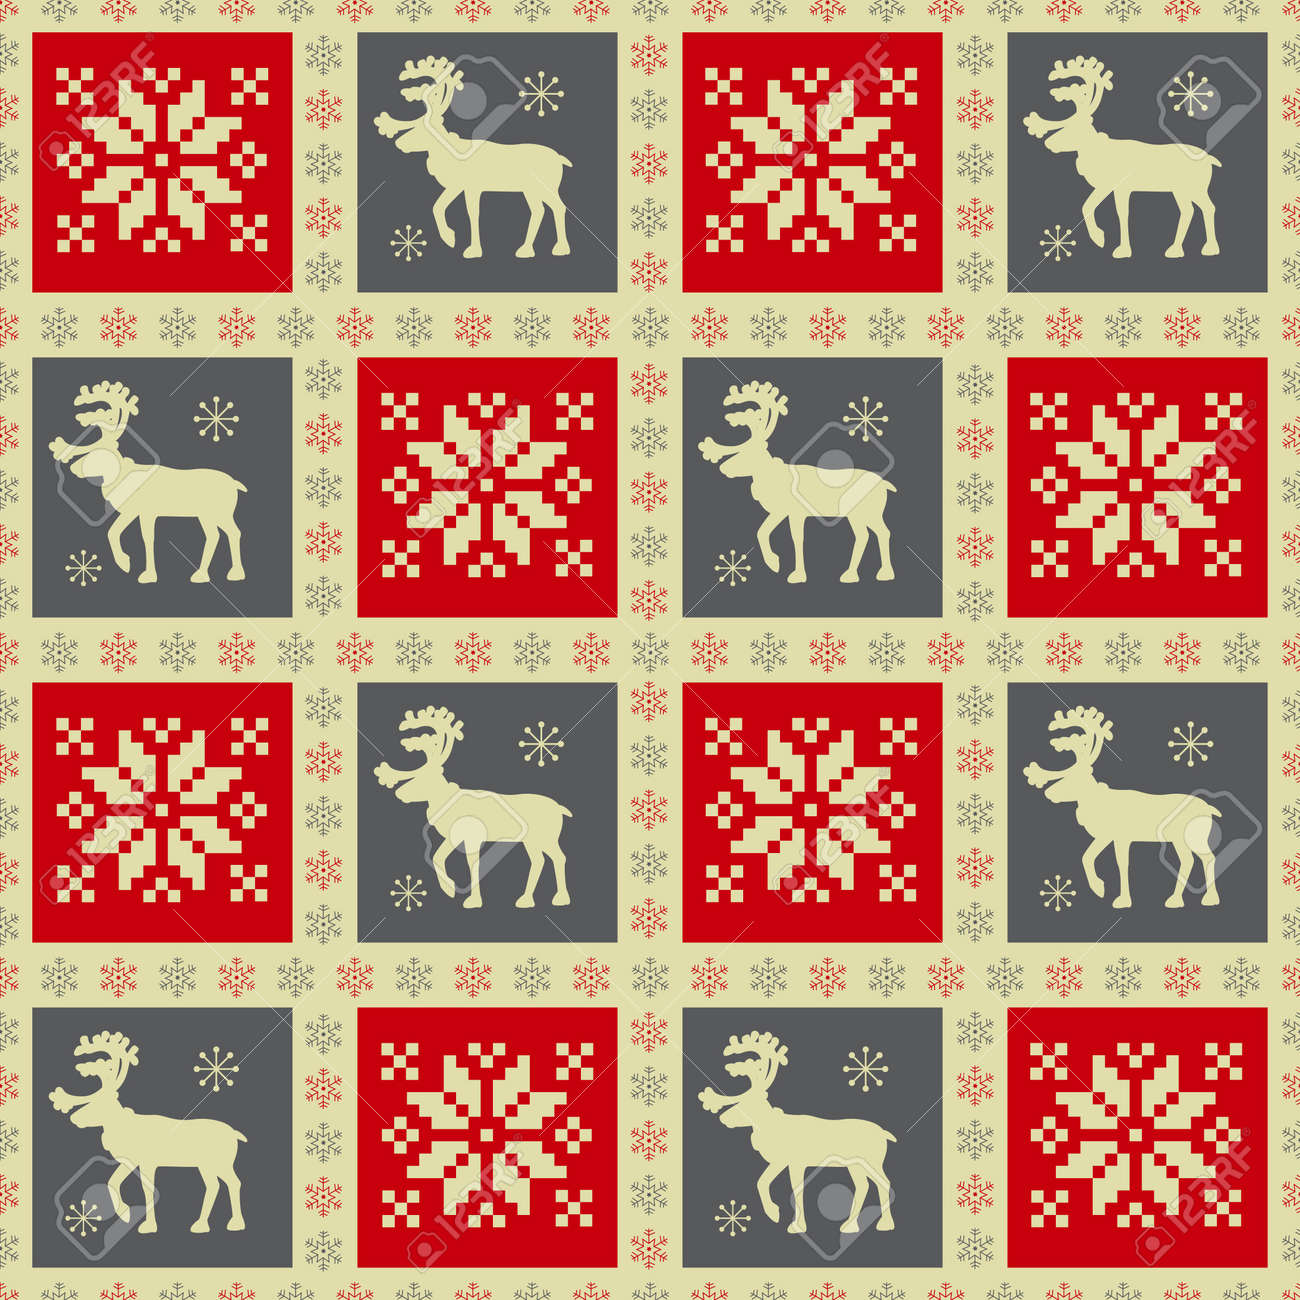 Christmas seamless pattern with reindeer - 15968453